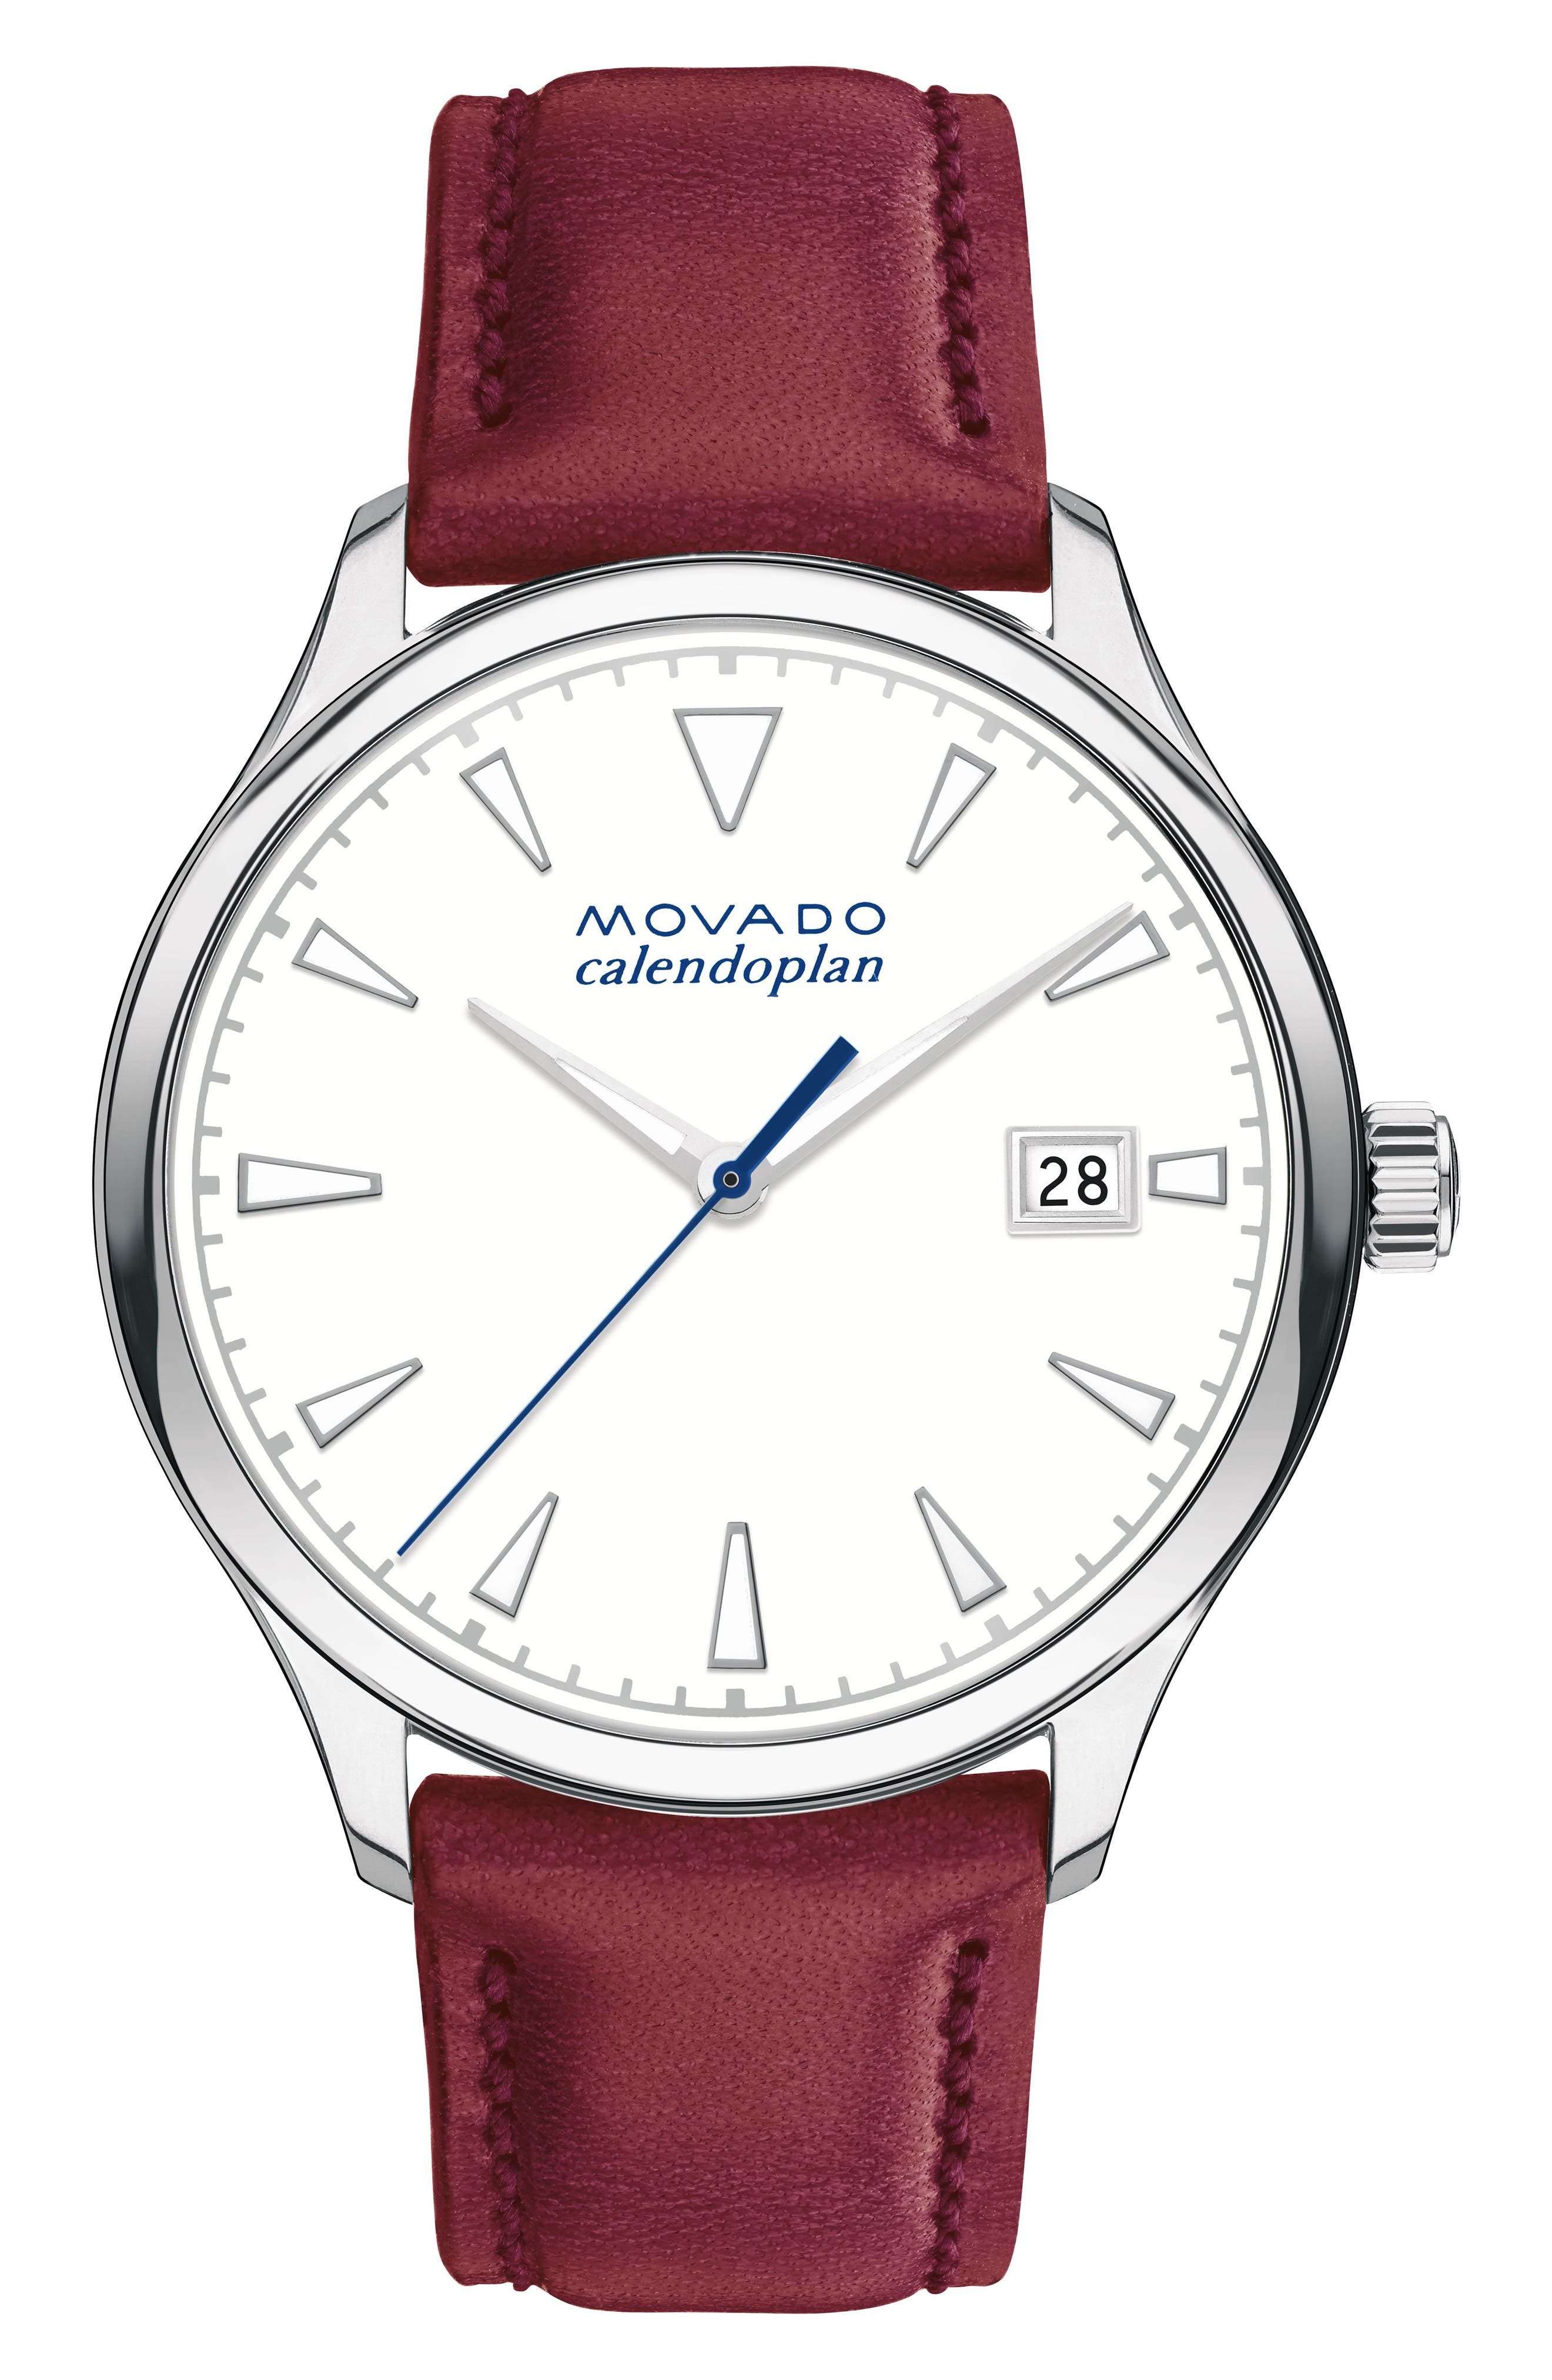 Movado Heritage Calendoplan Leather Strap Watch, 36mm